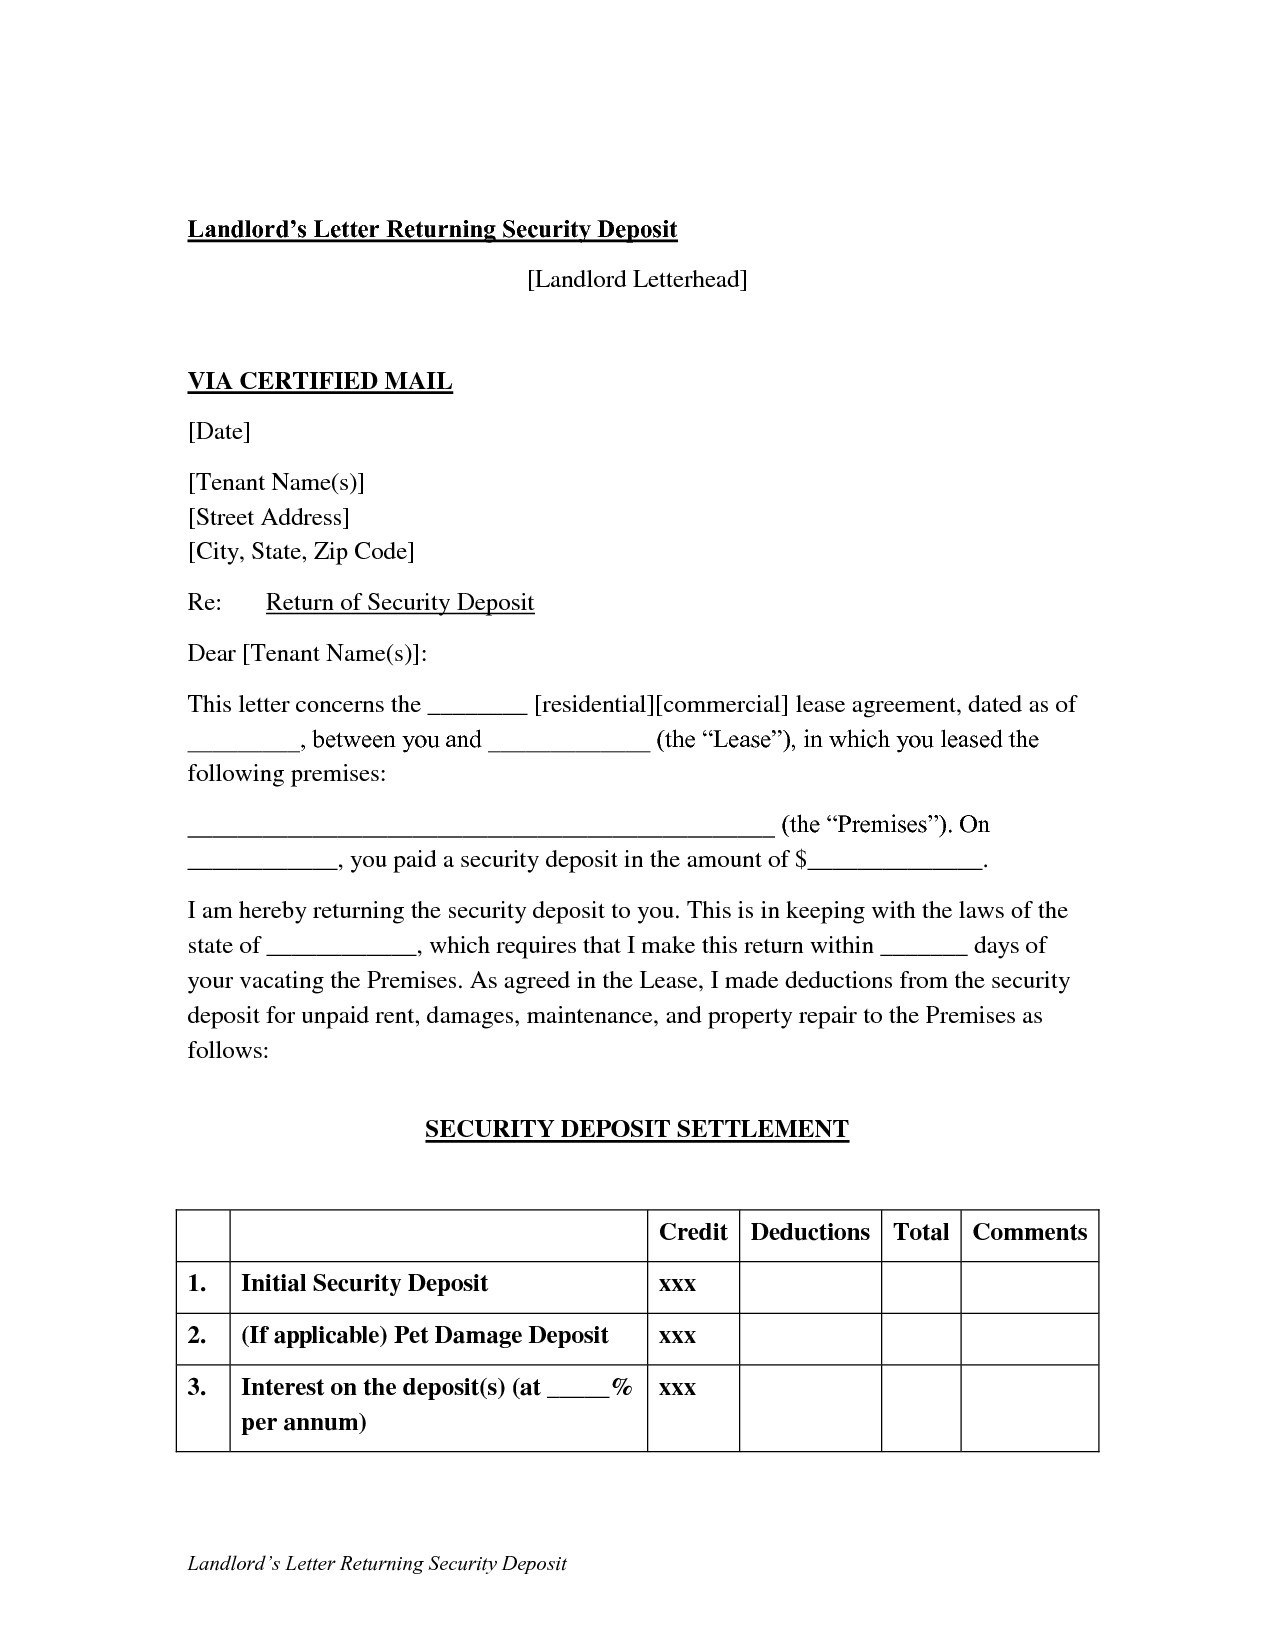 Security Deposit Refund Letter Template - Sample Security Deposit Refund Letter